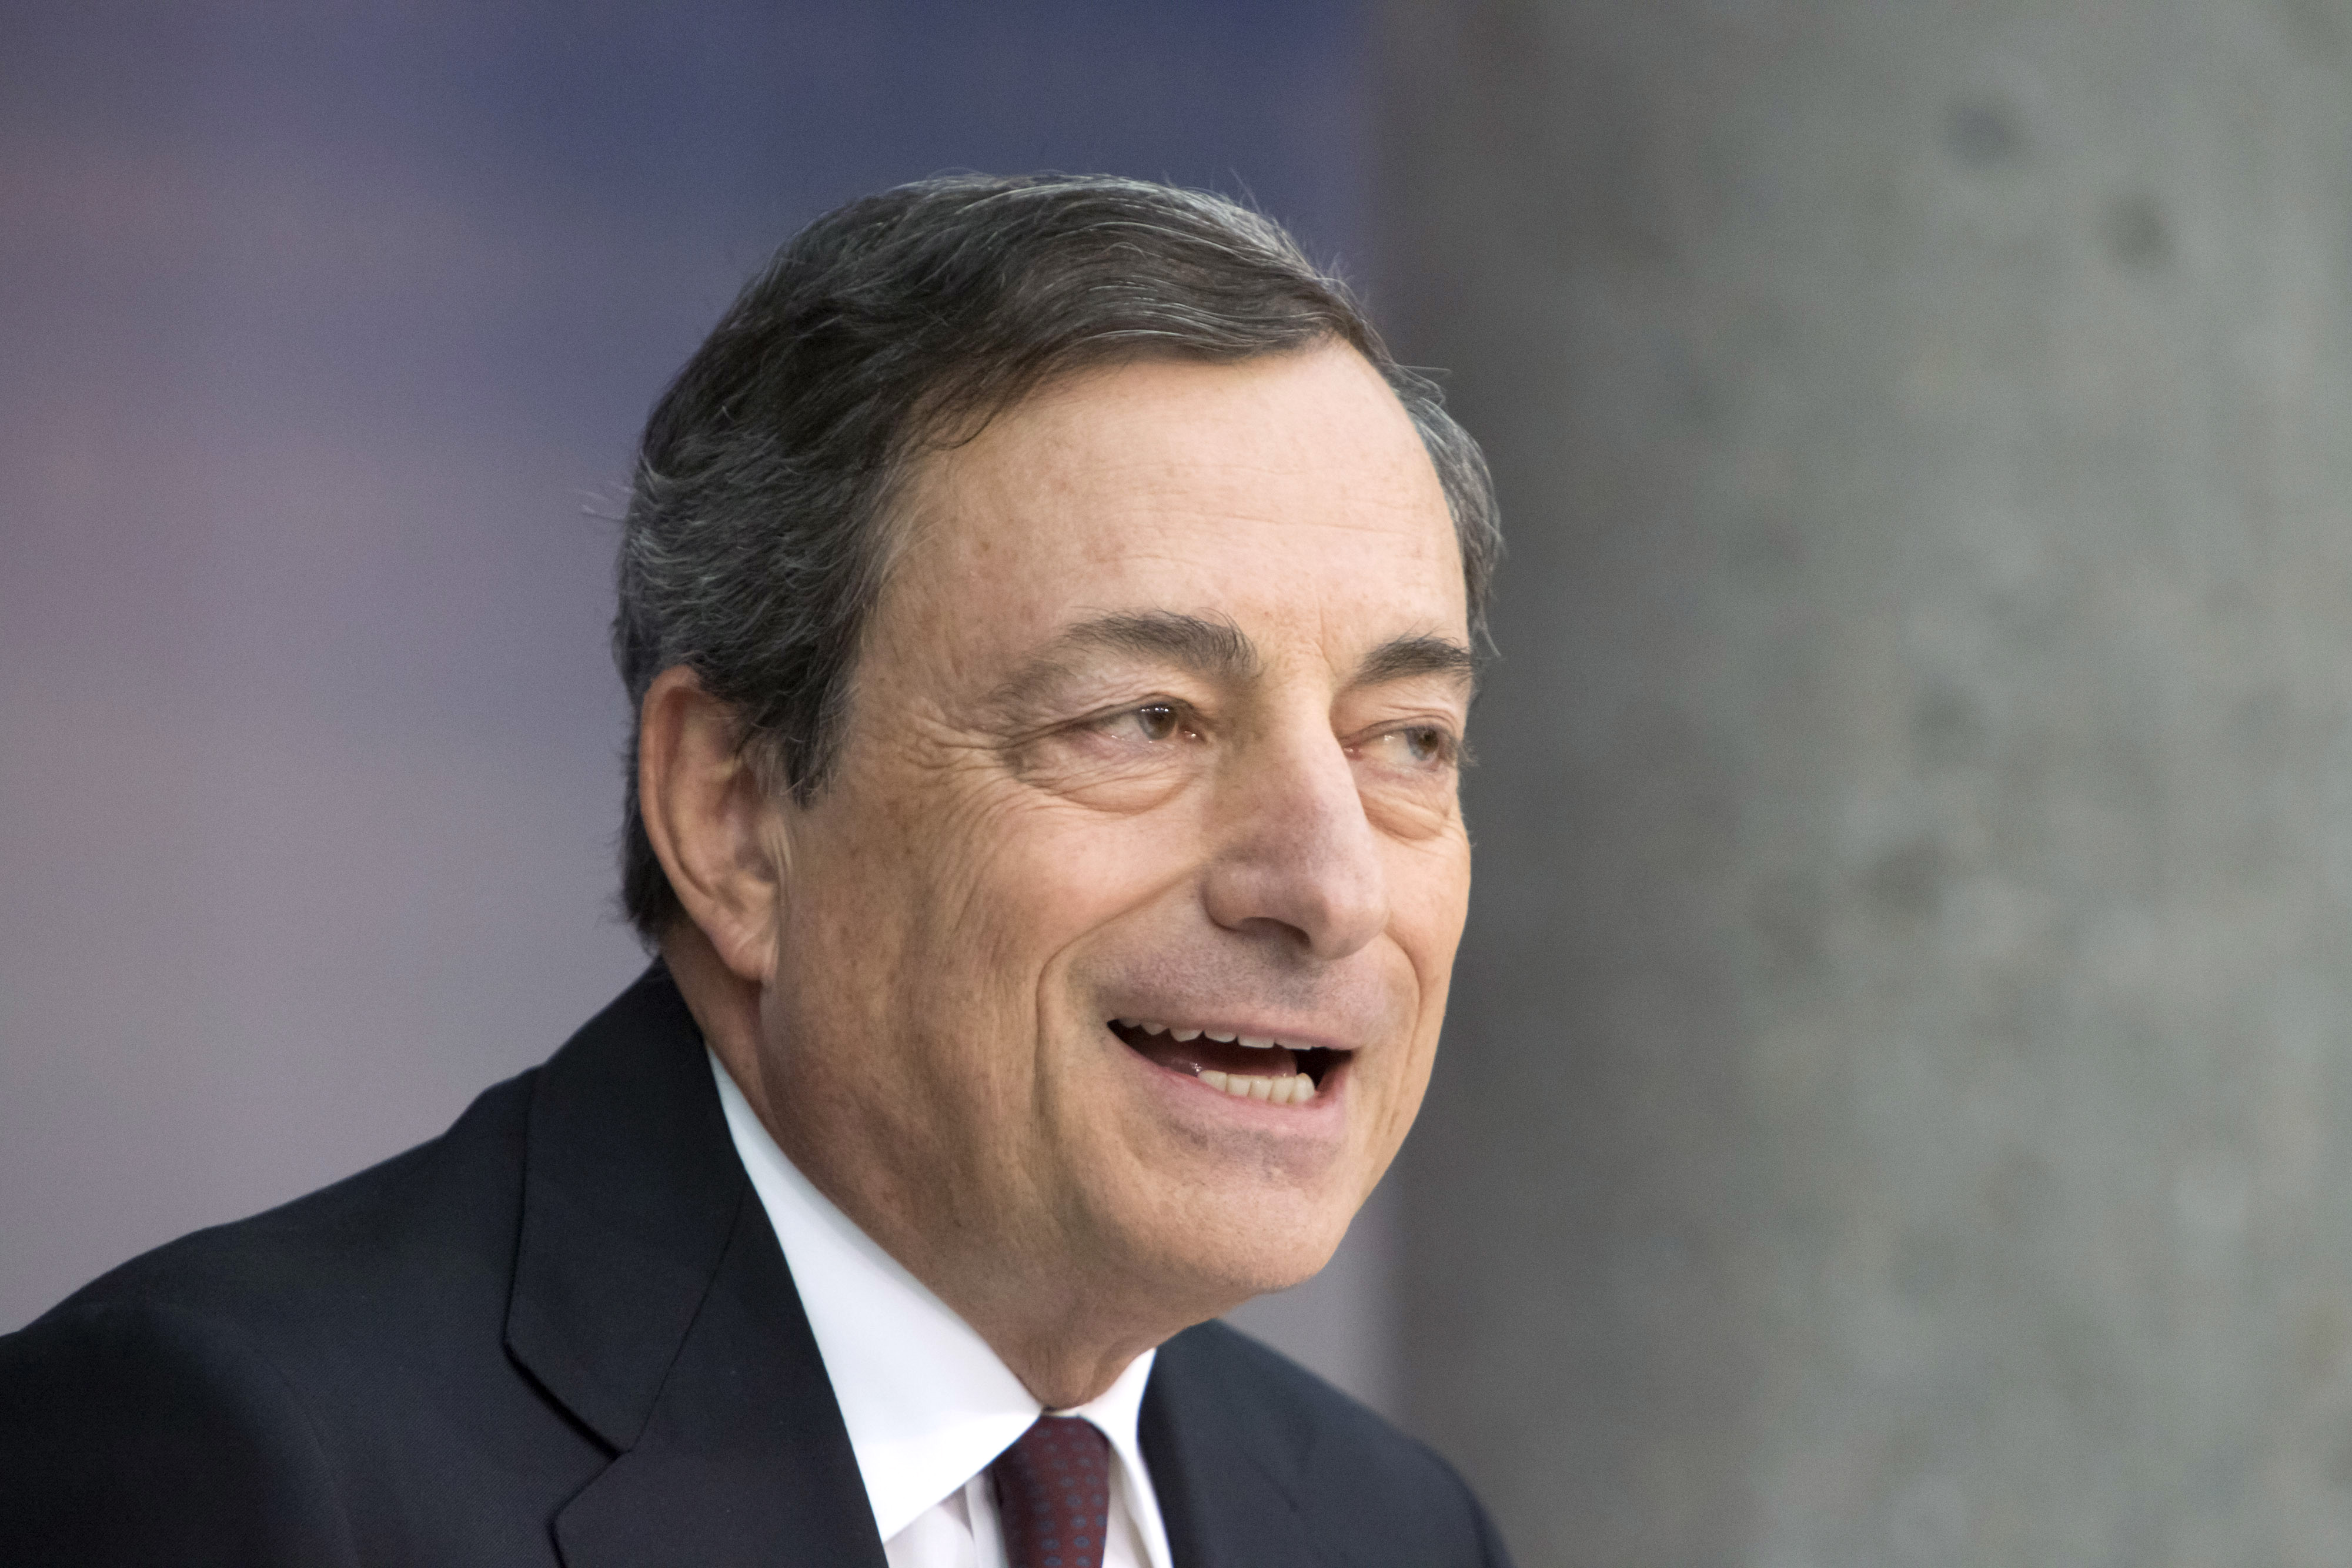 European Central Bank President Mario Draghi News Conference As Economic Outlook Menaced By Russia's President Vladimir Putin